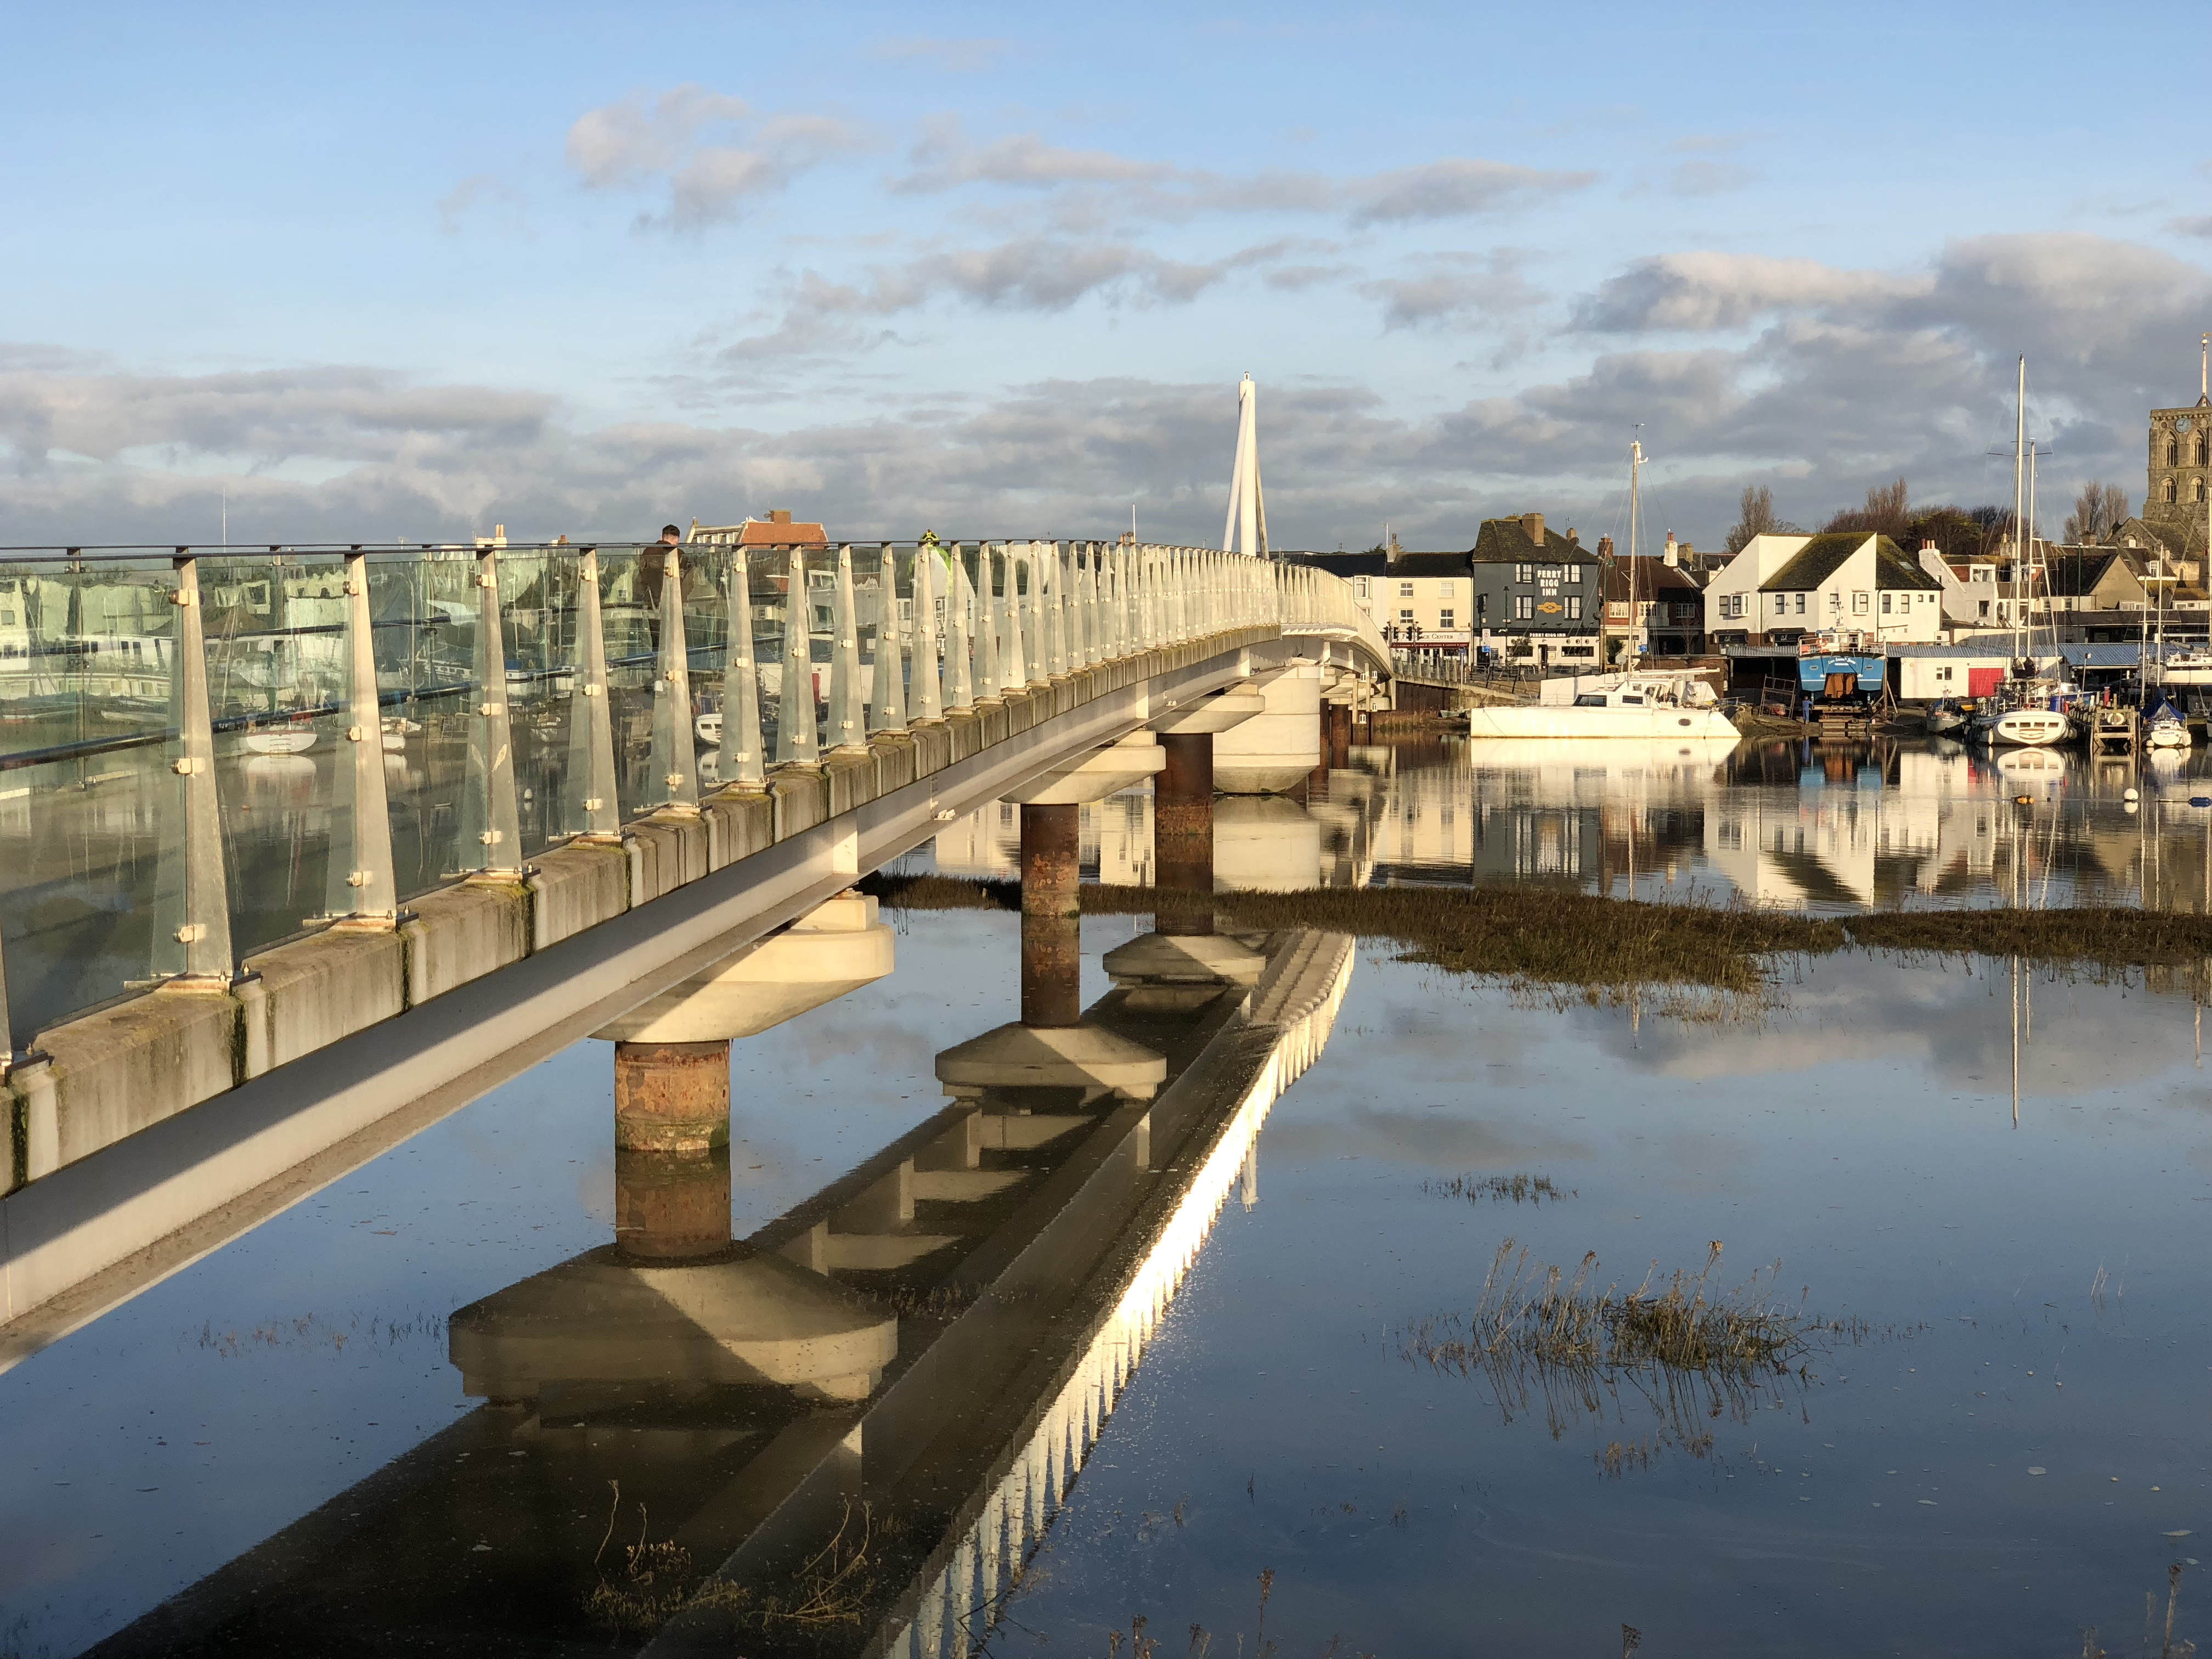 The Adur Ferry Bridge